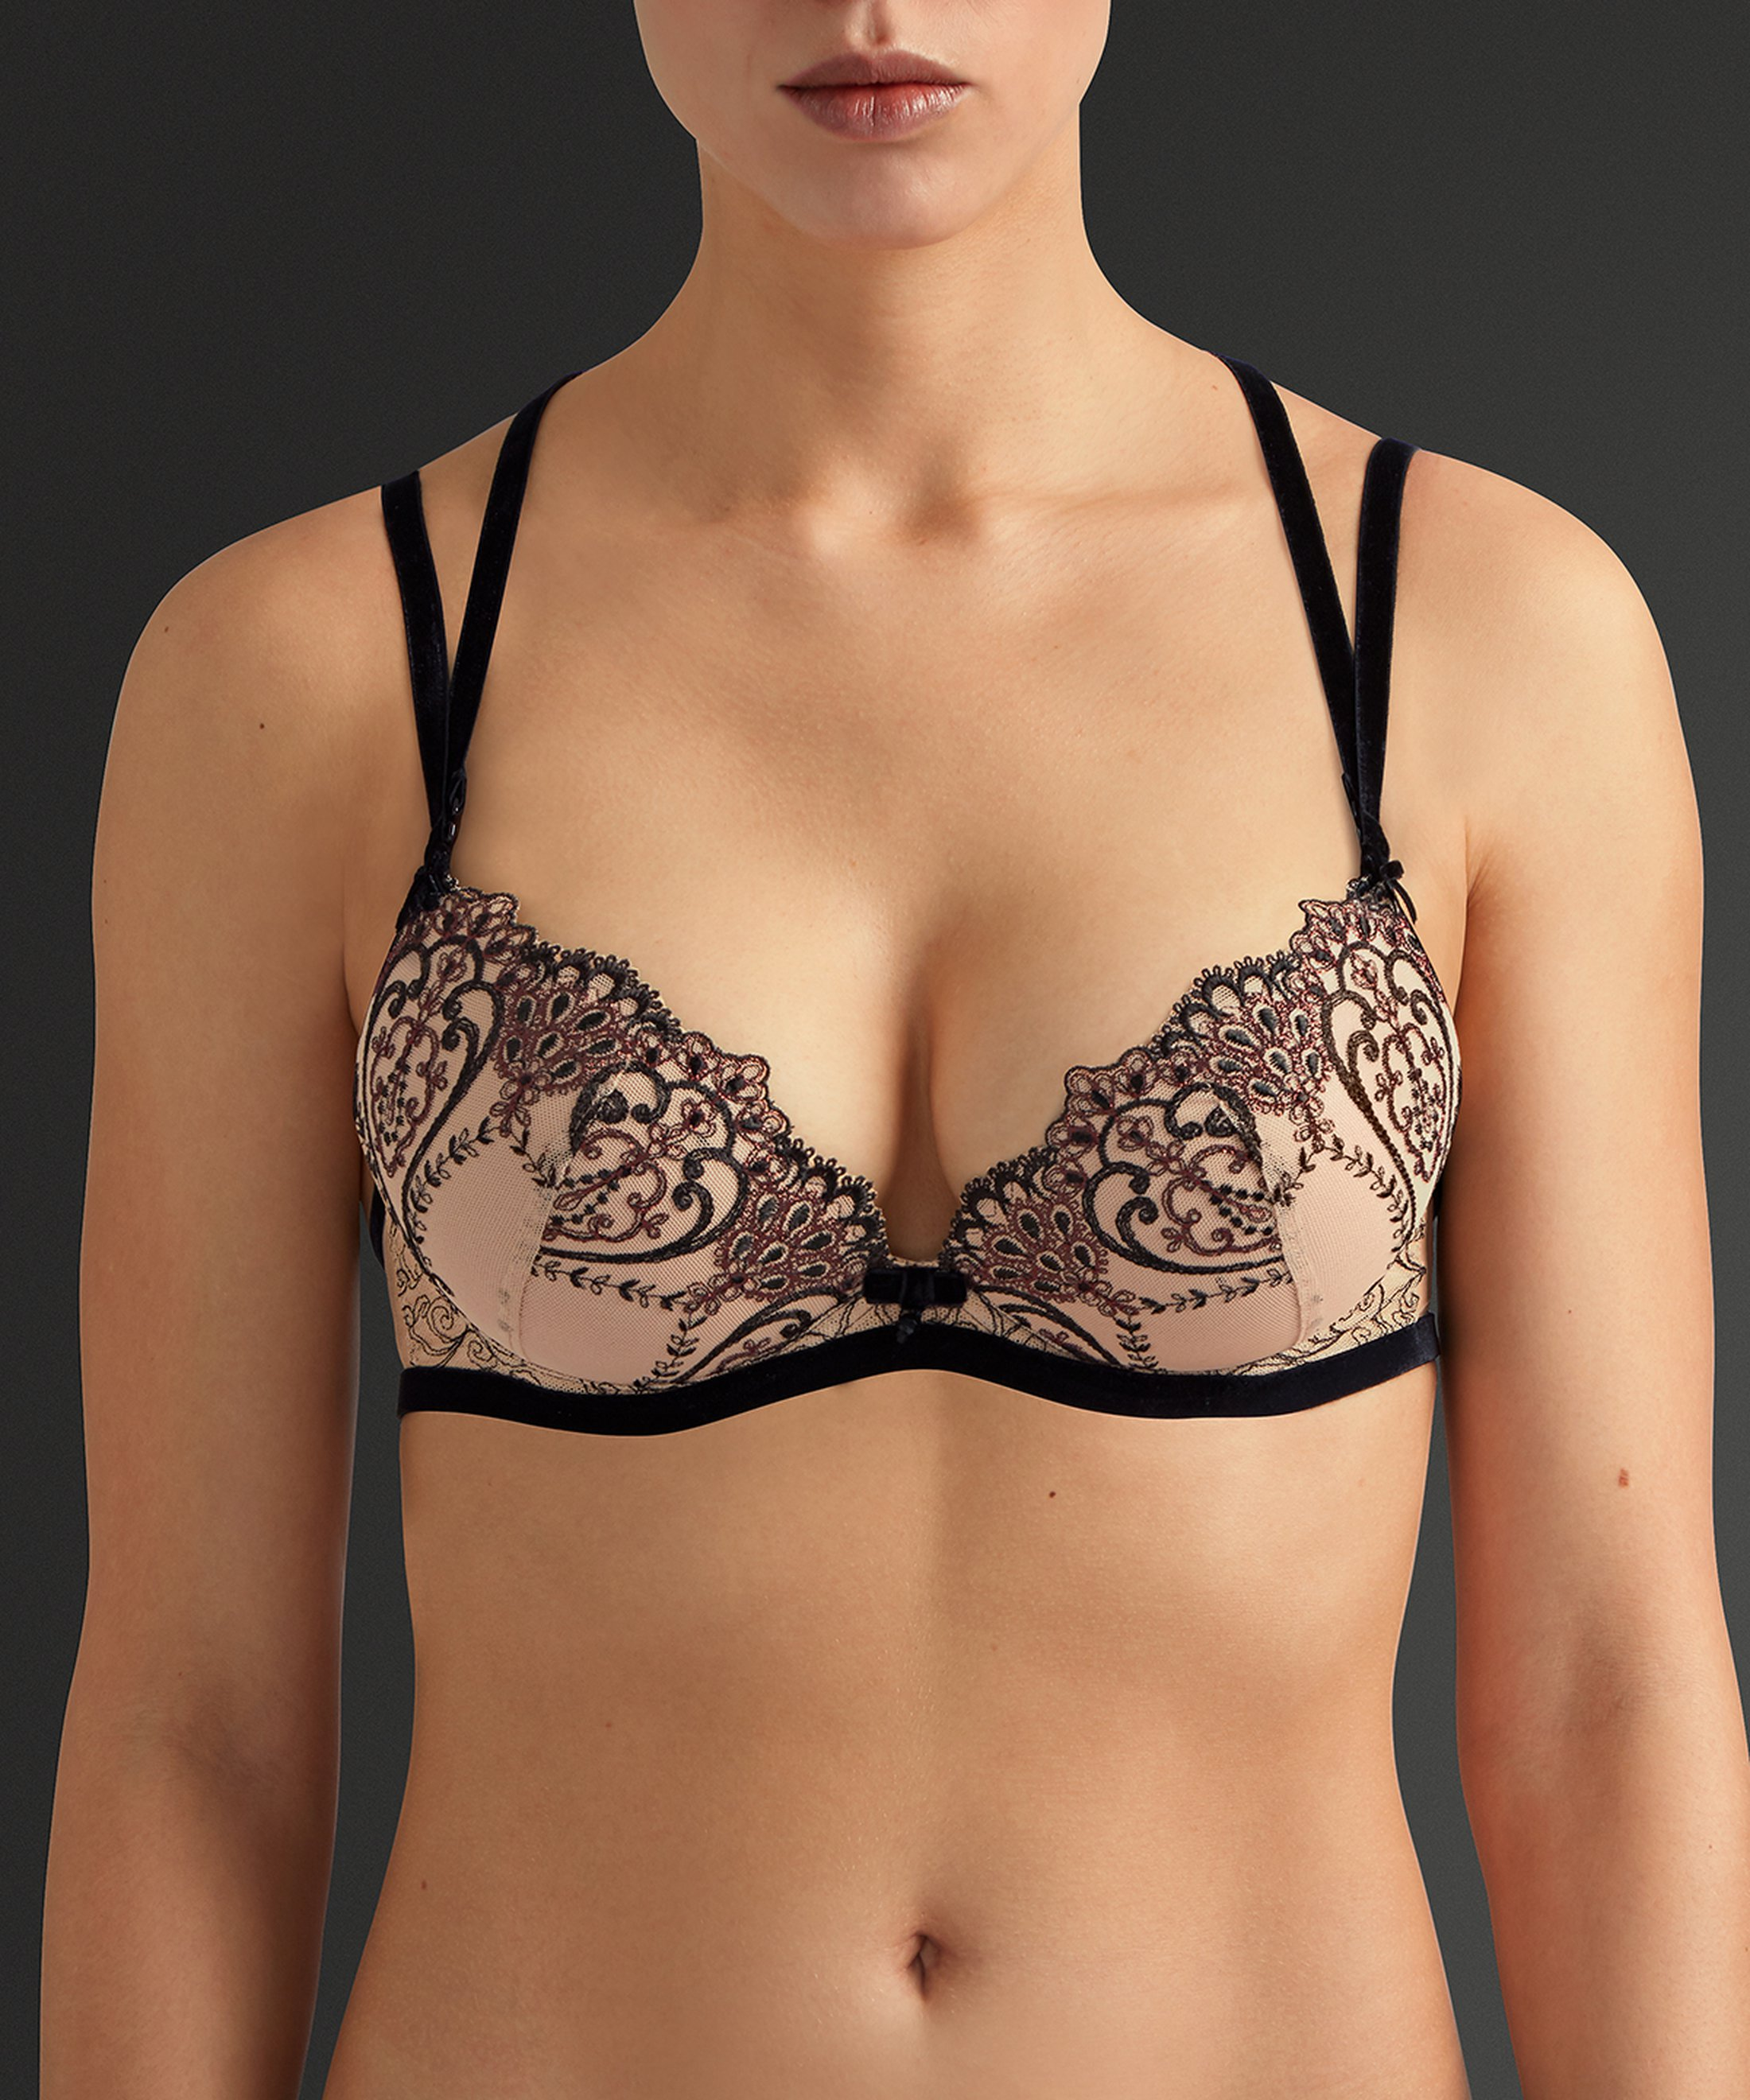 COEURS ENLACÉS Moulded push-up bra Serenade Black | Aubade